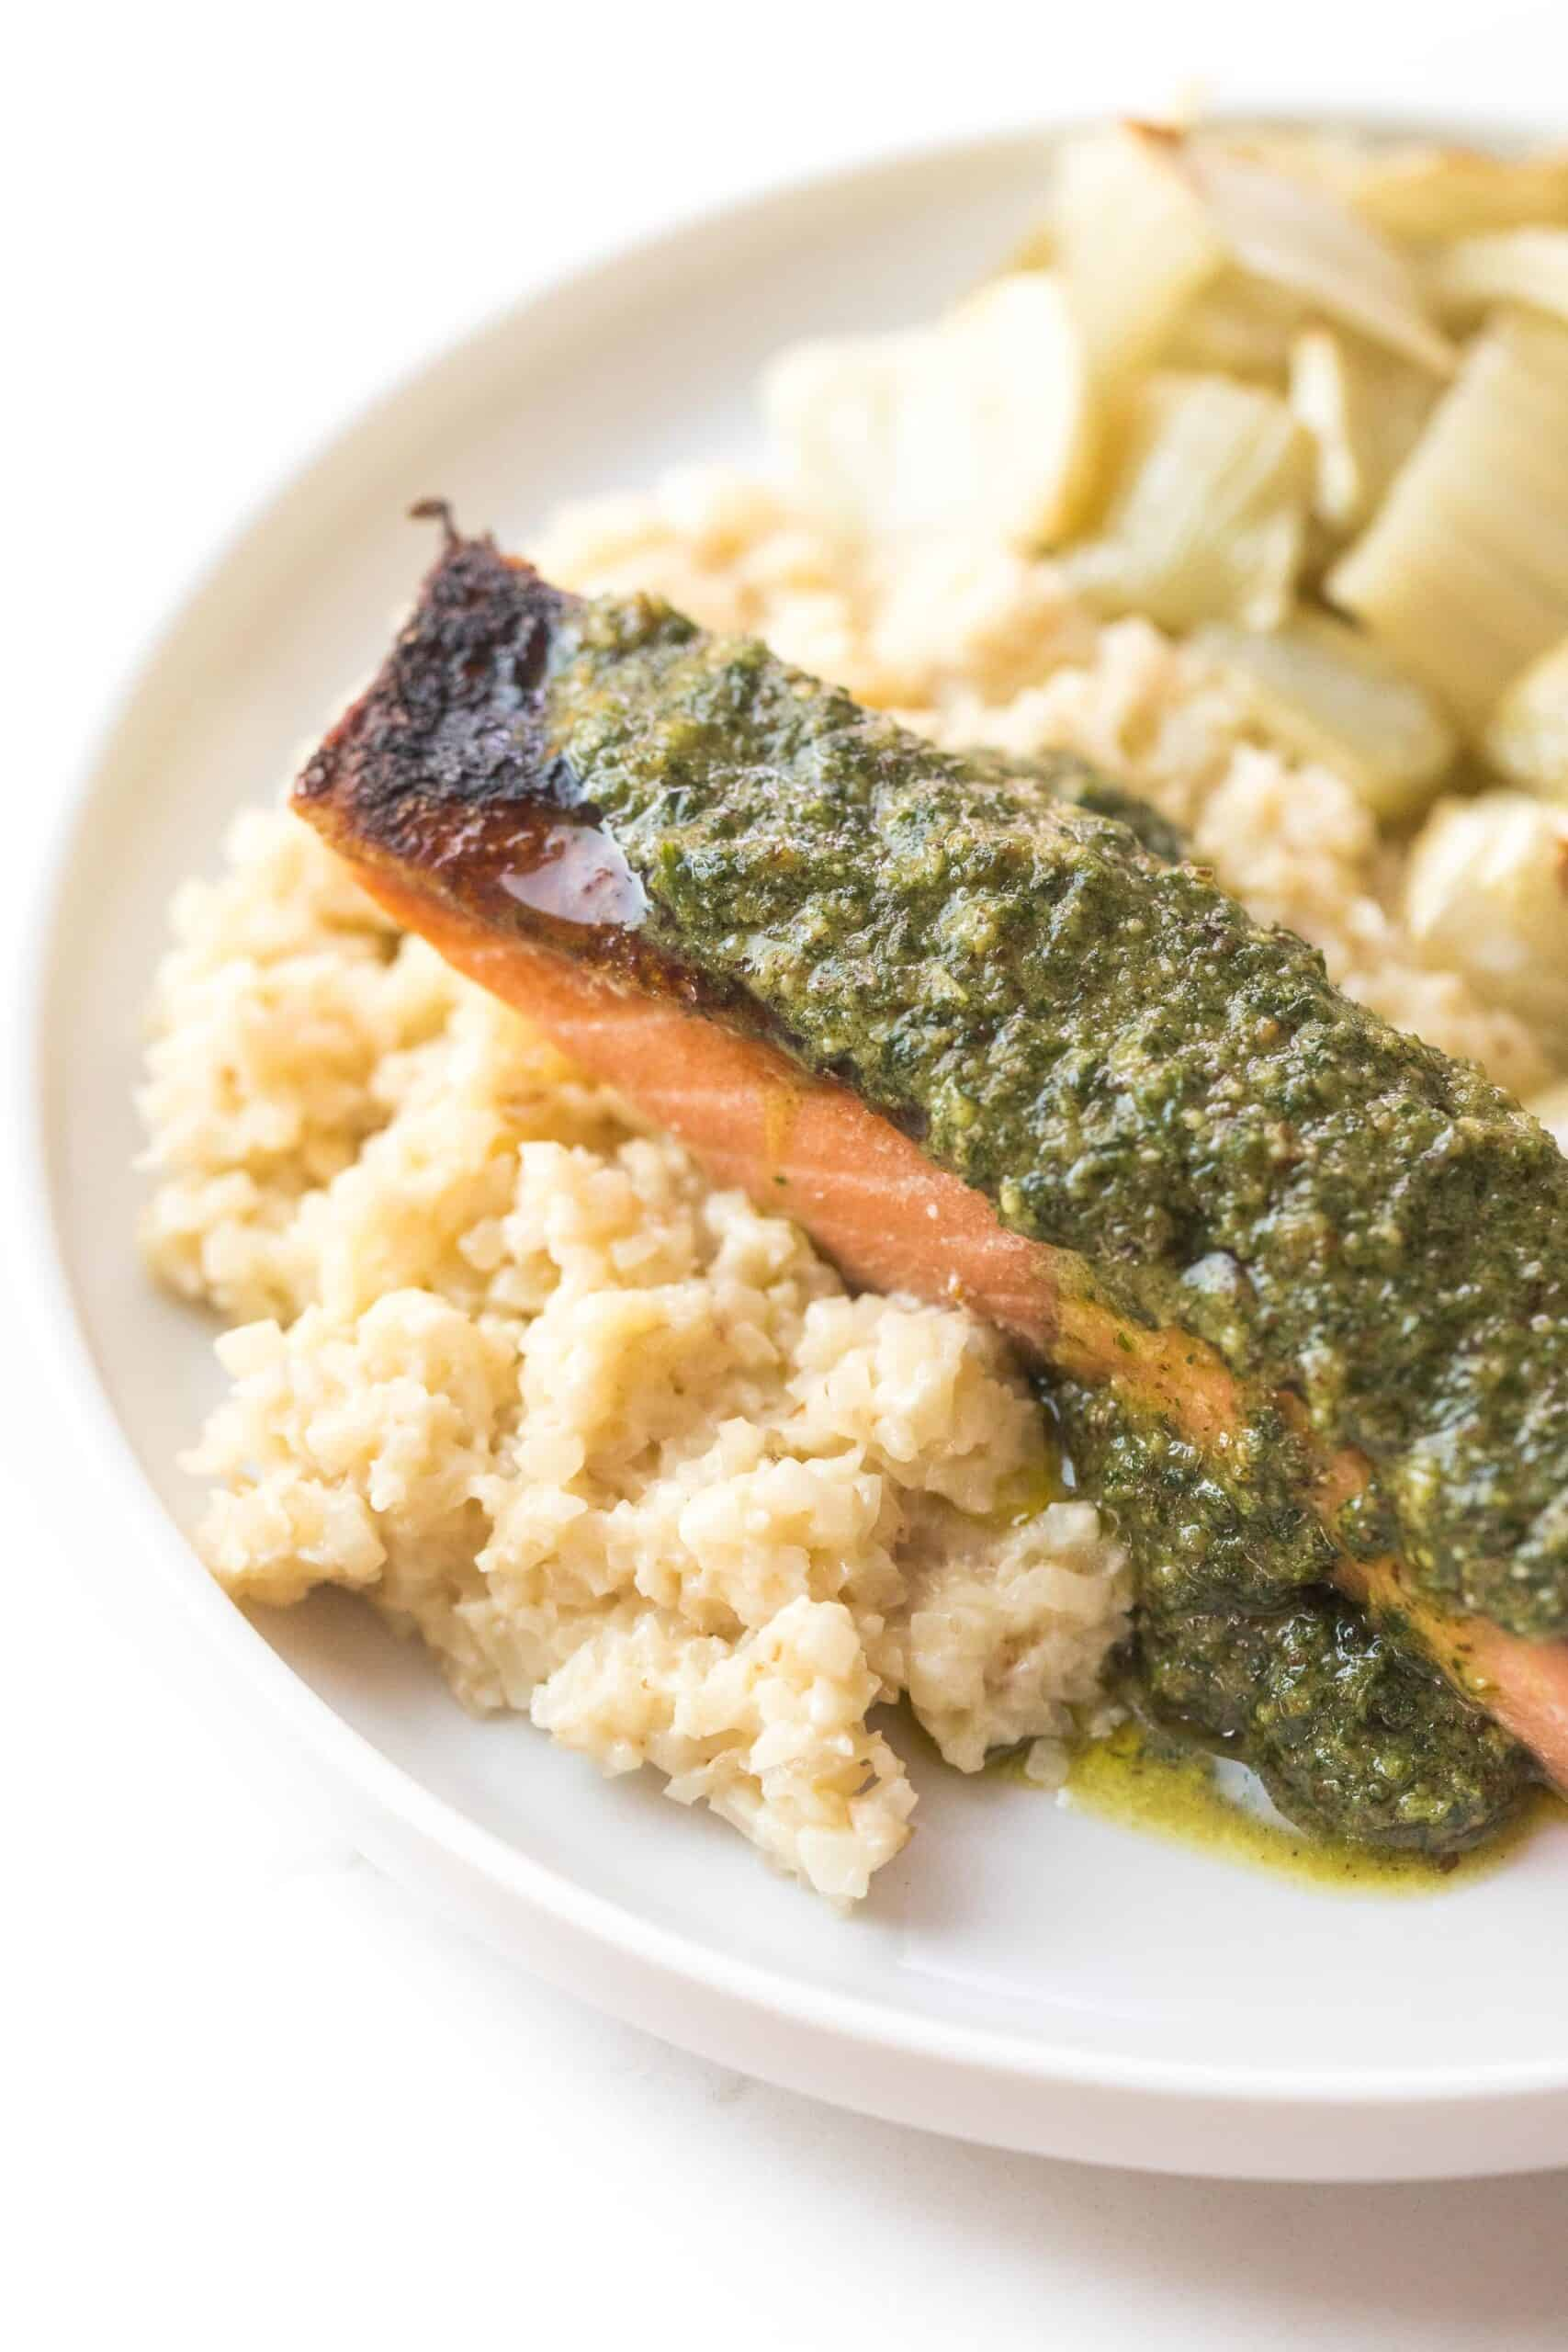 salmon topped with a green sauce on a white plate and background